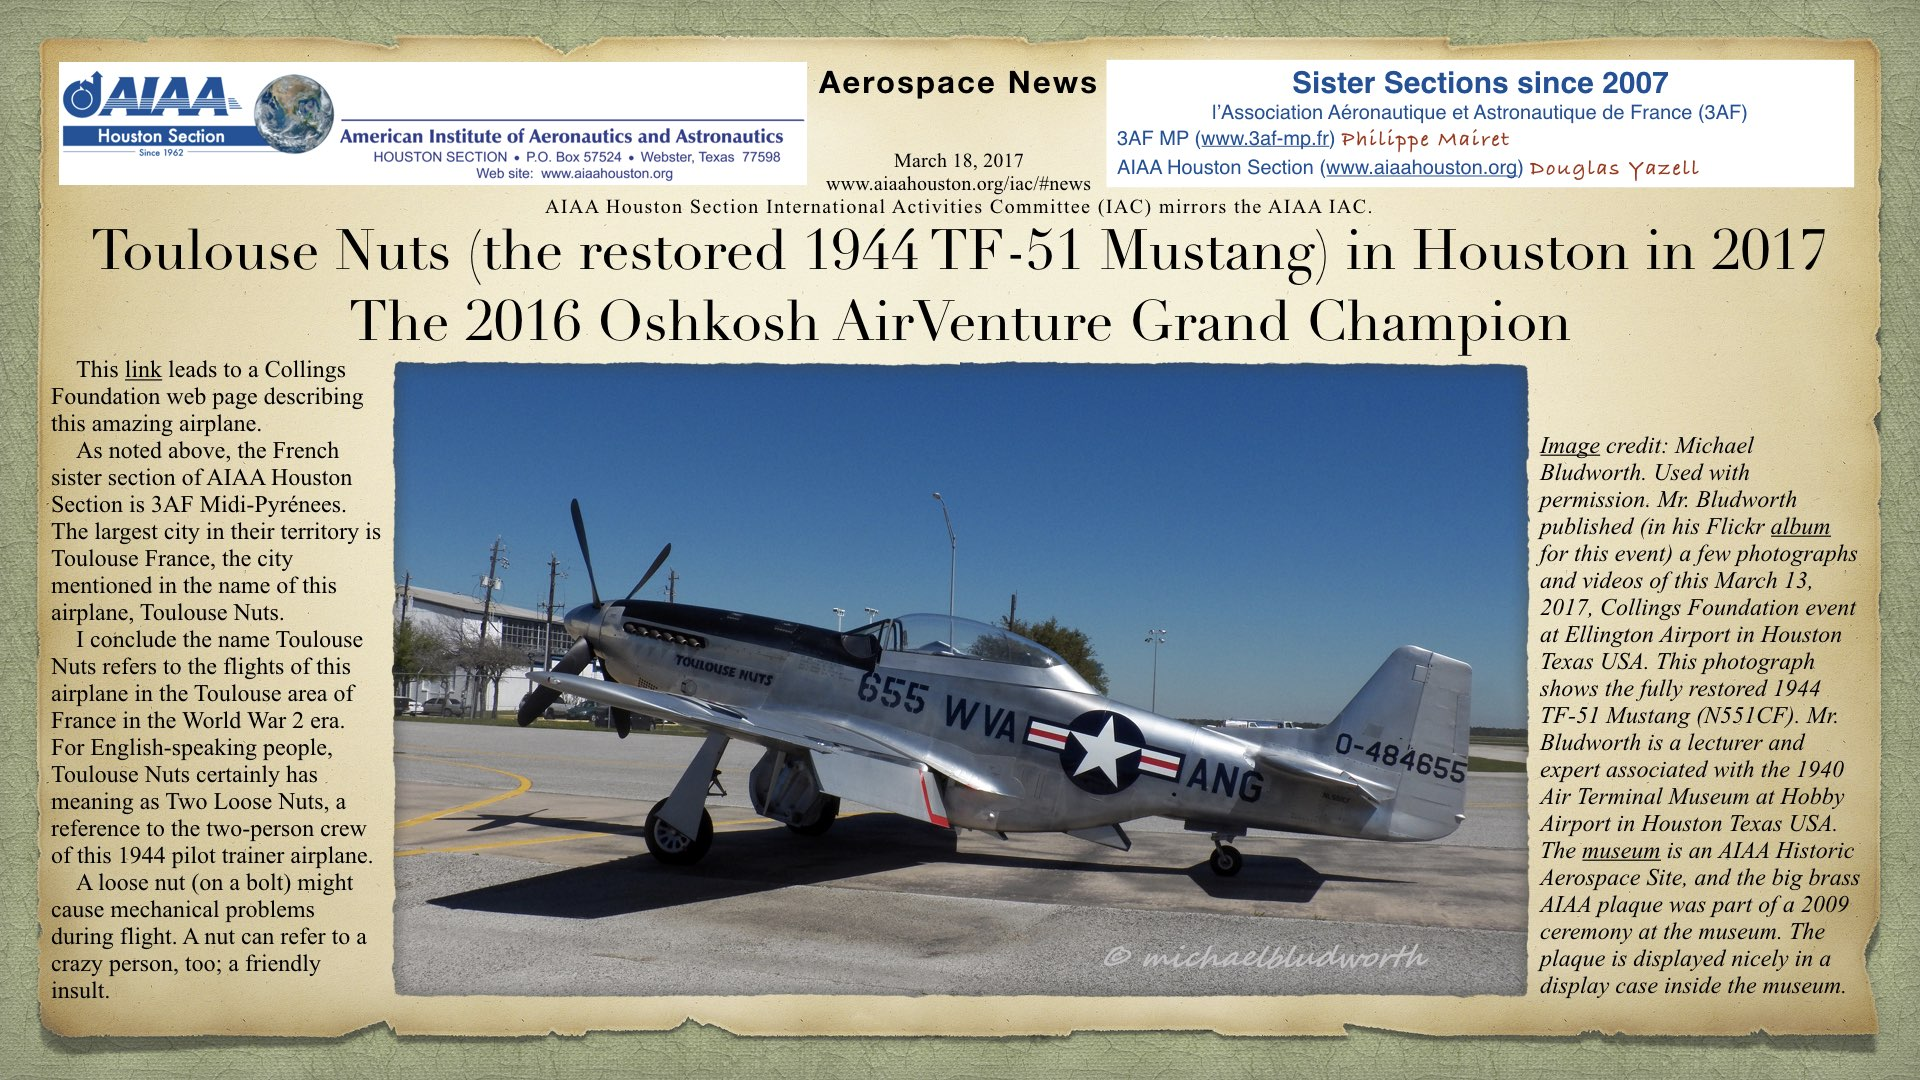 Above: Toulouse Nuts (the restored 1944 TF-51 Mustang) in Houston in 2017; The 2016 Oshkosh AirVenture Grand Champion. (Click to zoom.)